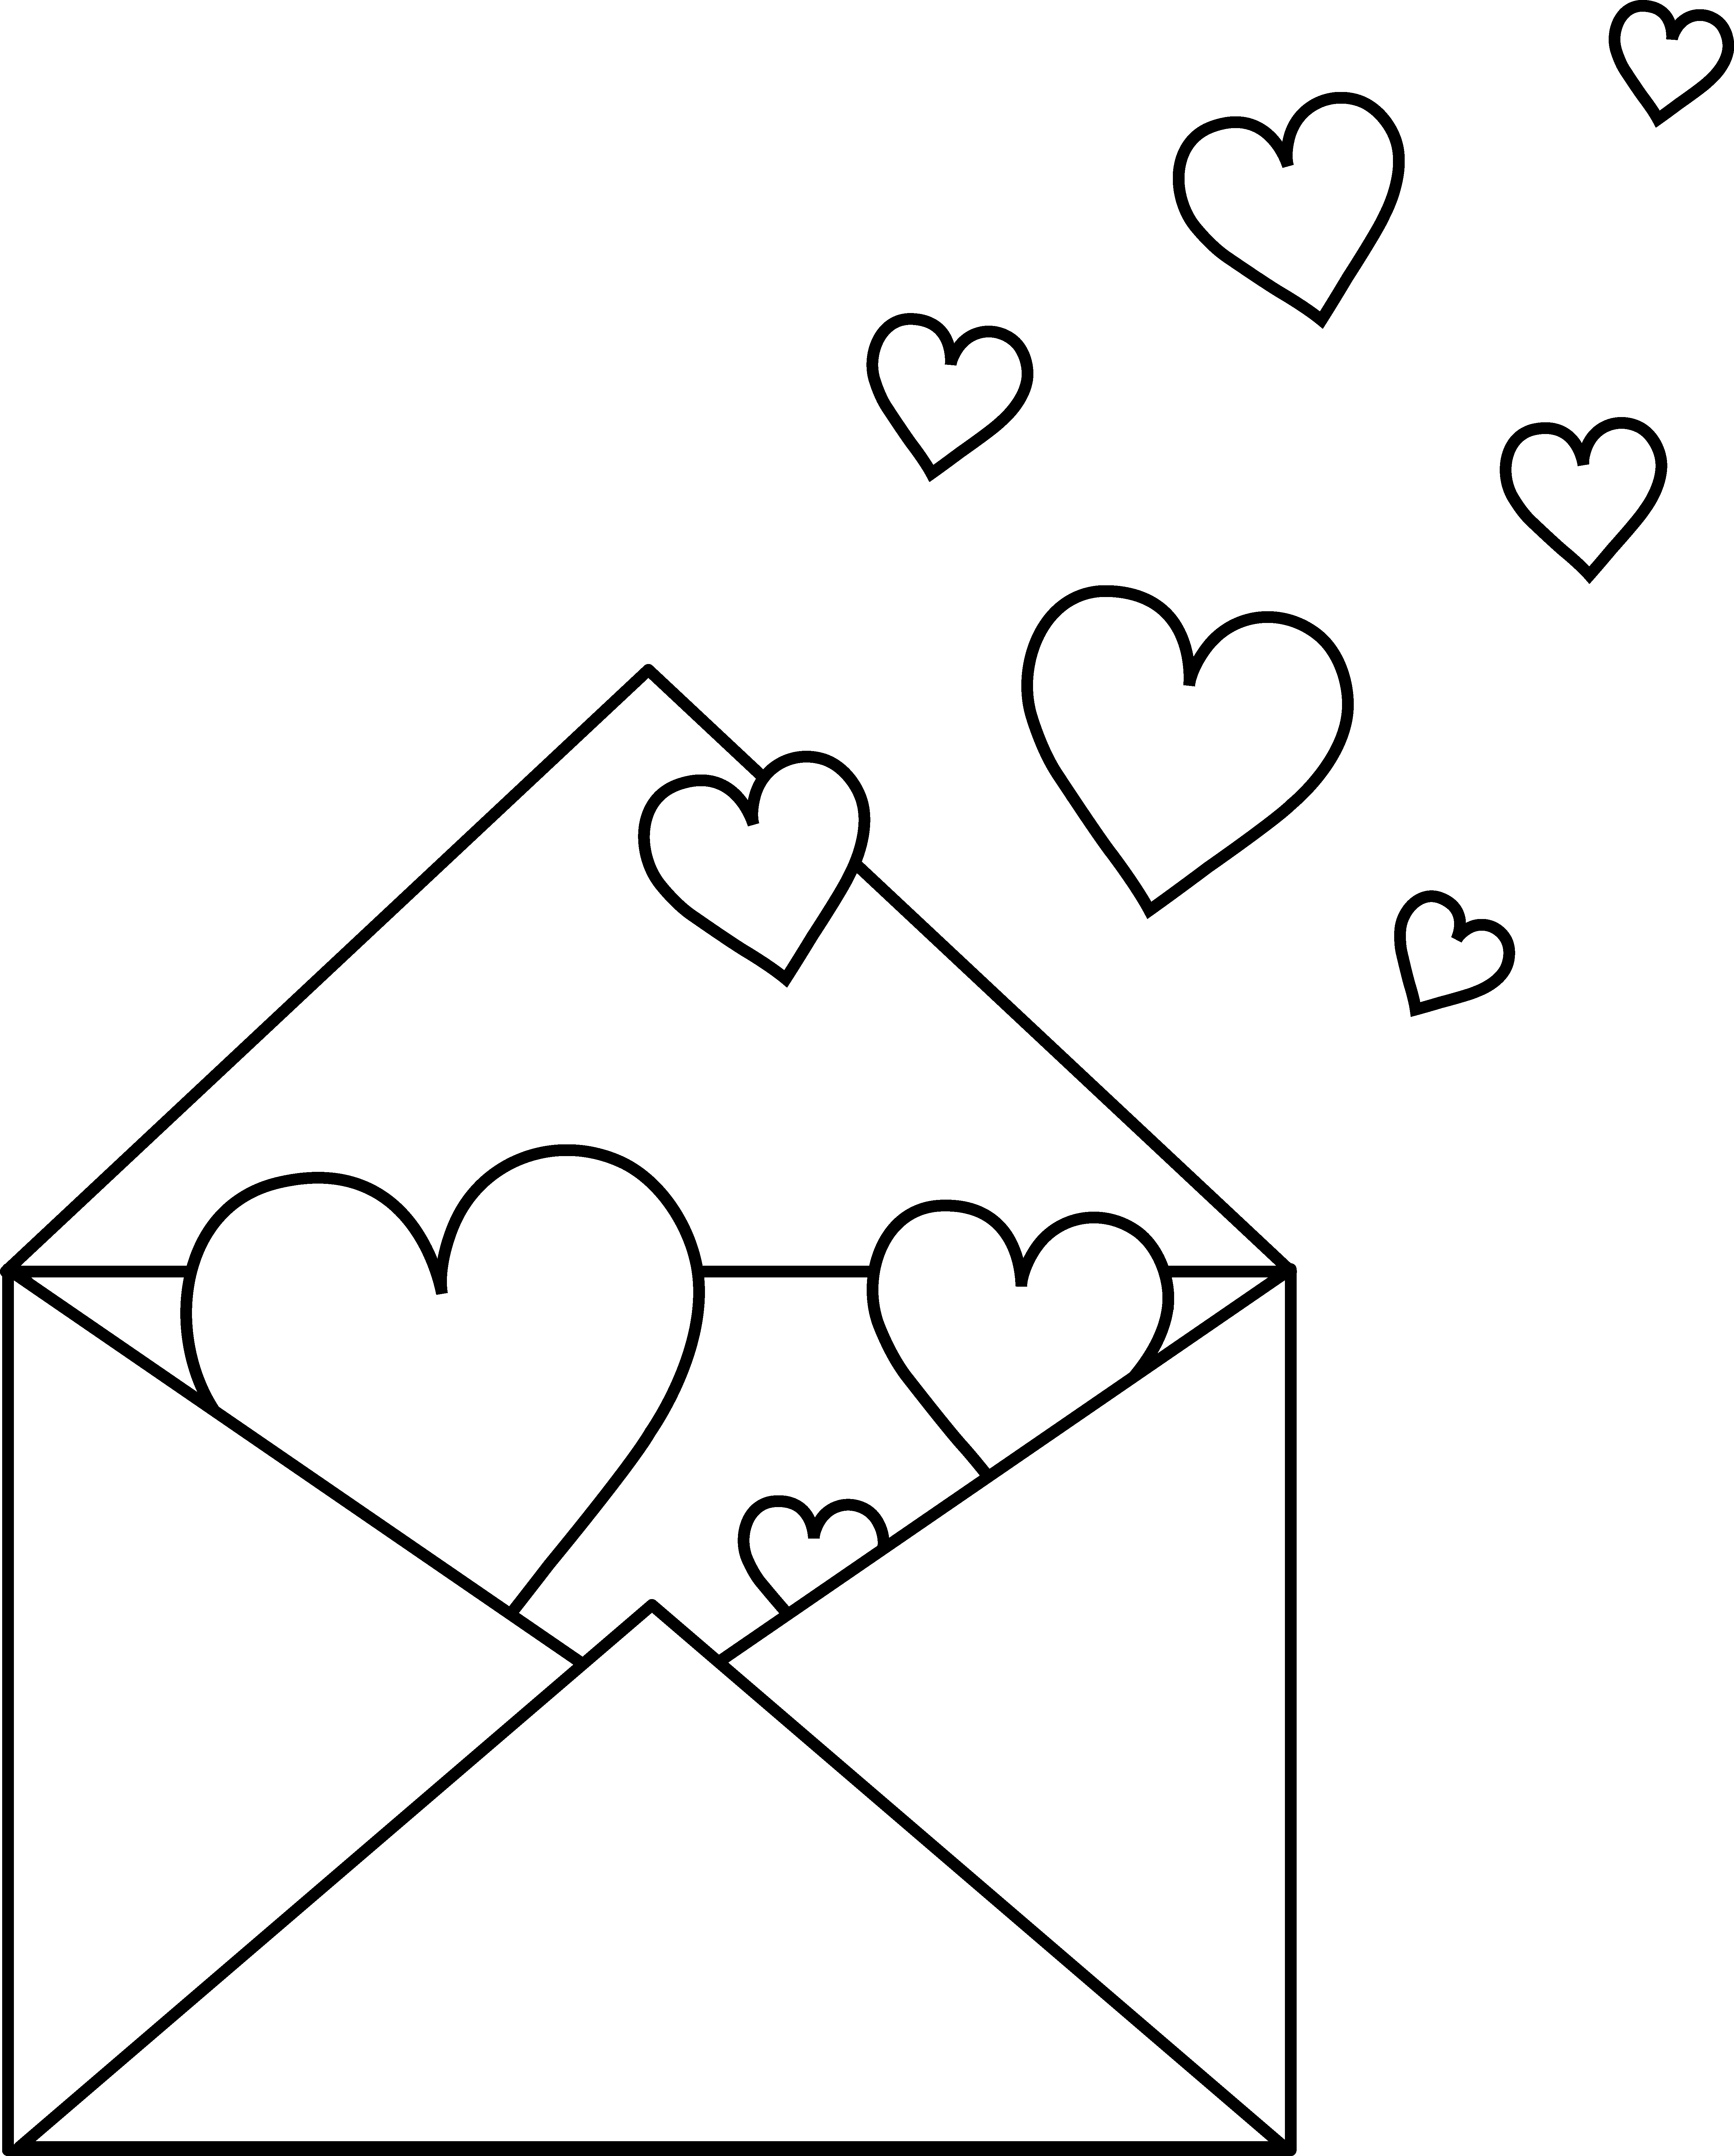 Drawing letter love. Free valentine pictures to